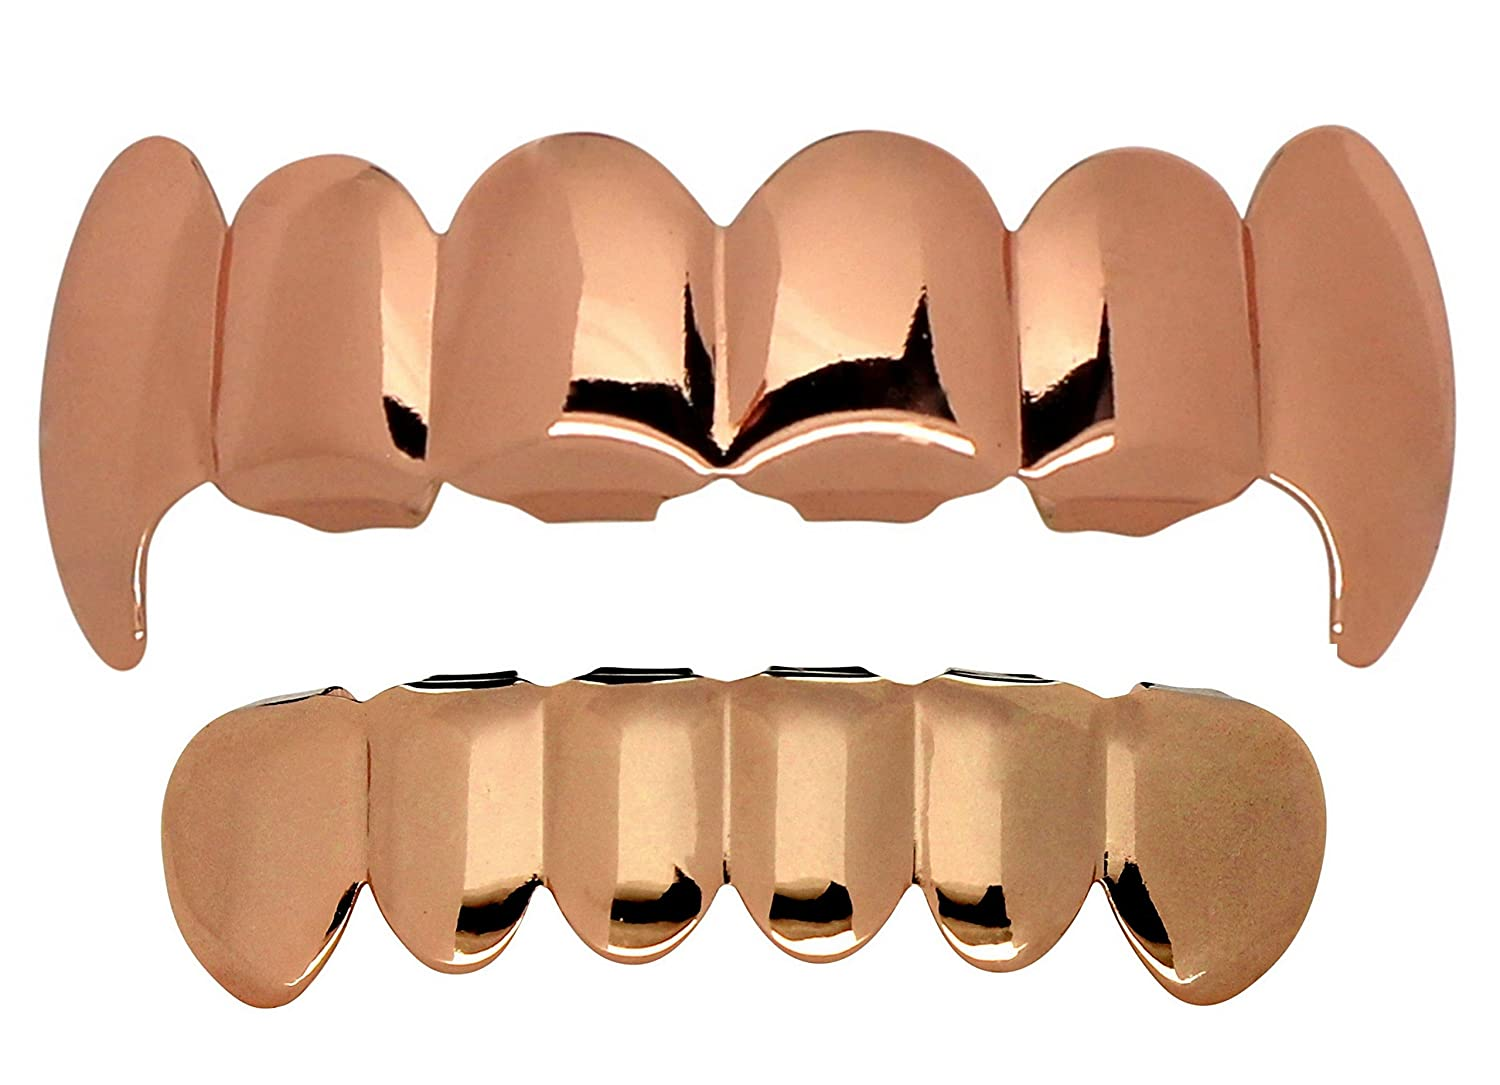 NewAgeBling Custom Fit Fang Rose Gold Plated HipHop Teeth Grillz Caps Top & Bottom Grill Set - 193